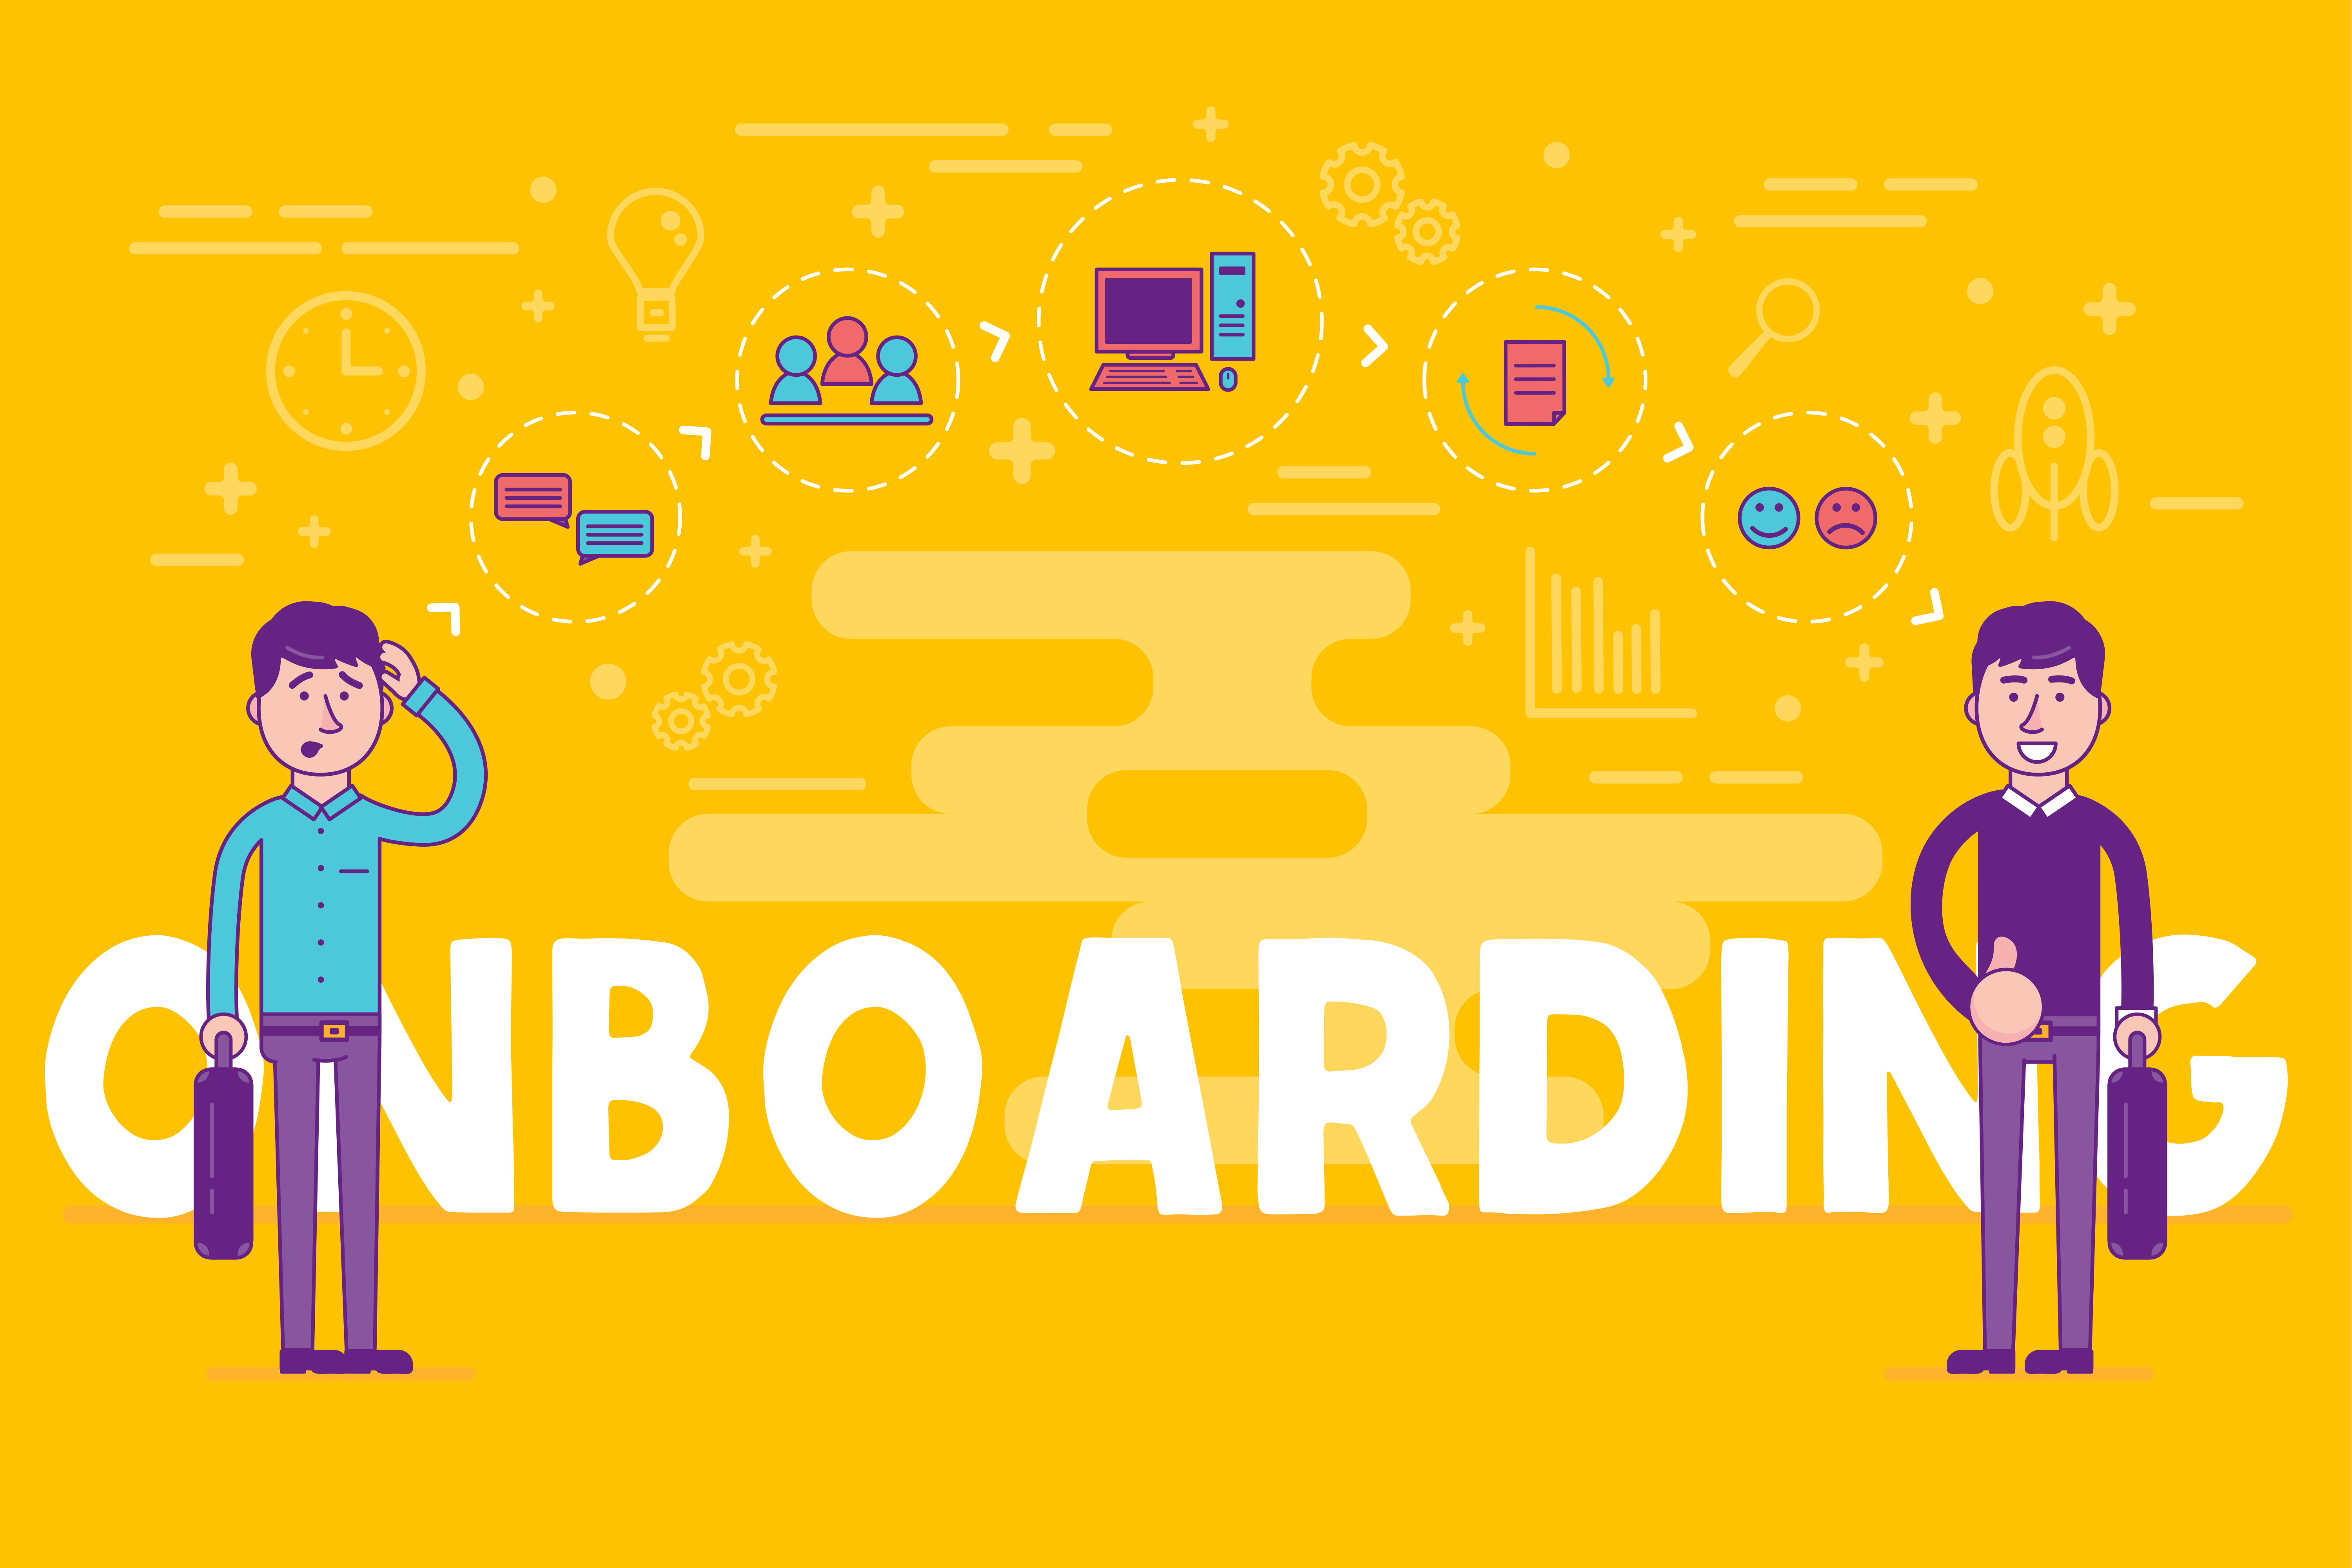 Onboarding, New hire training